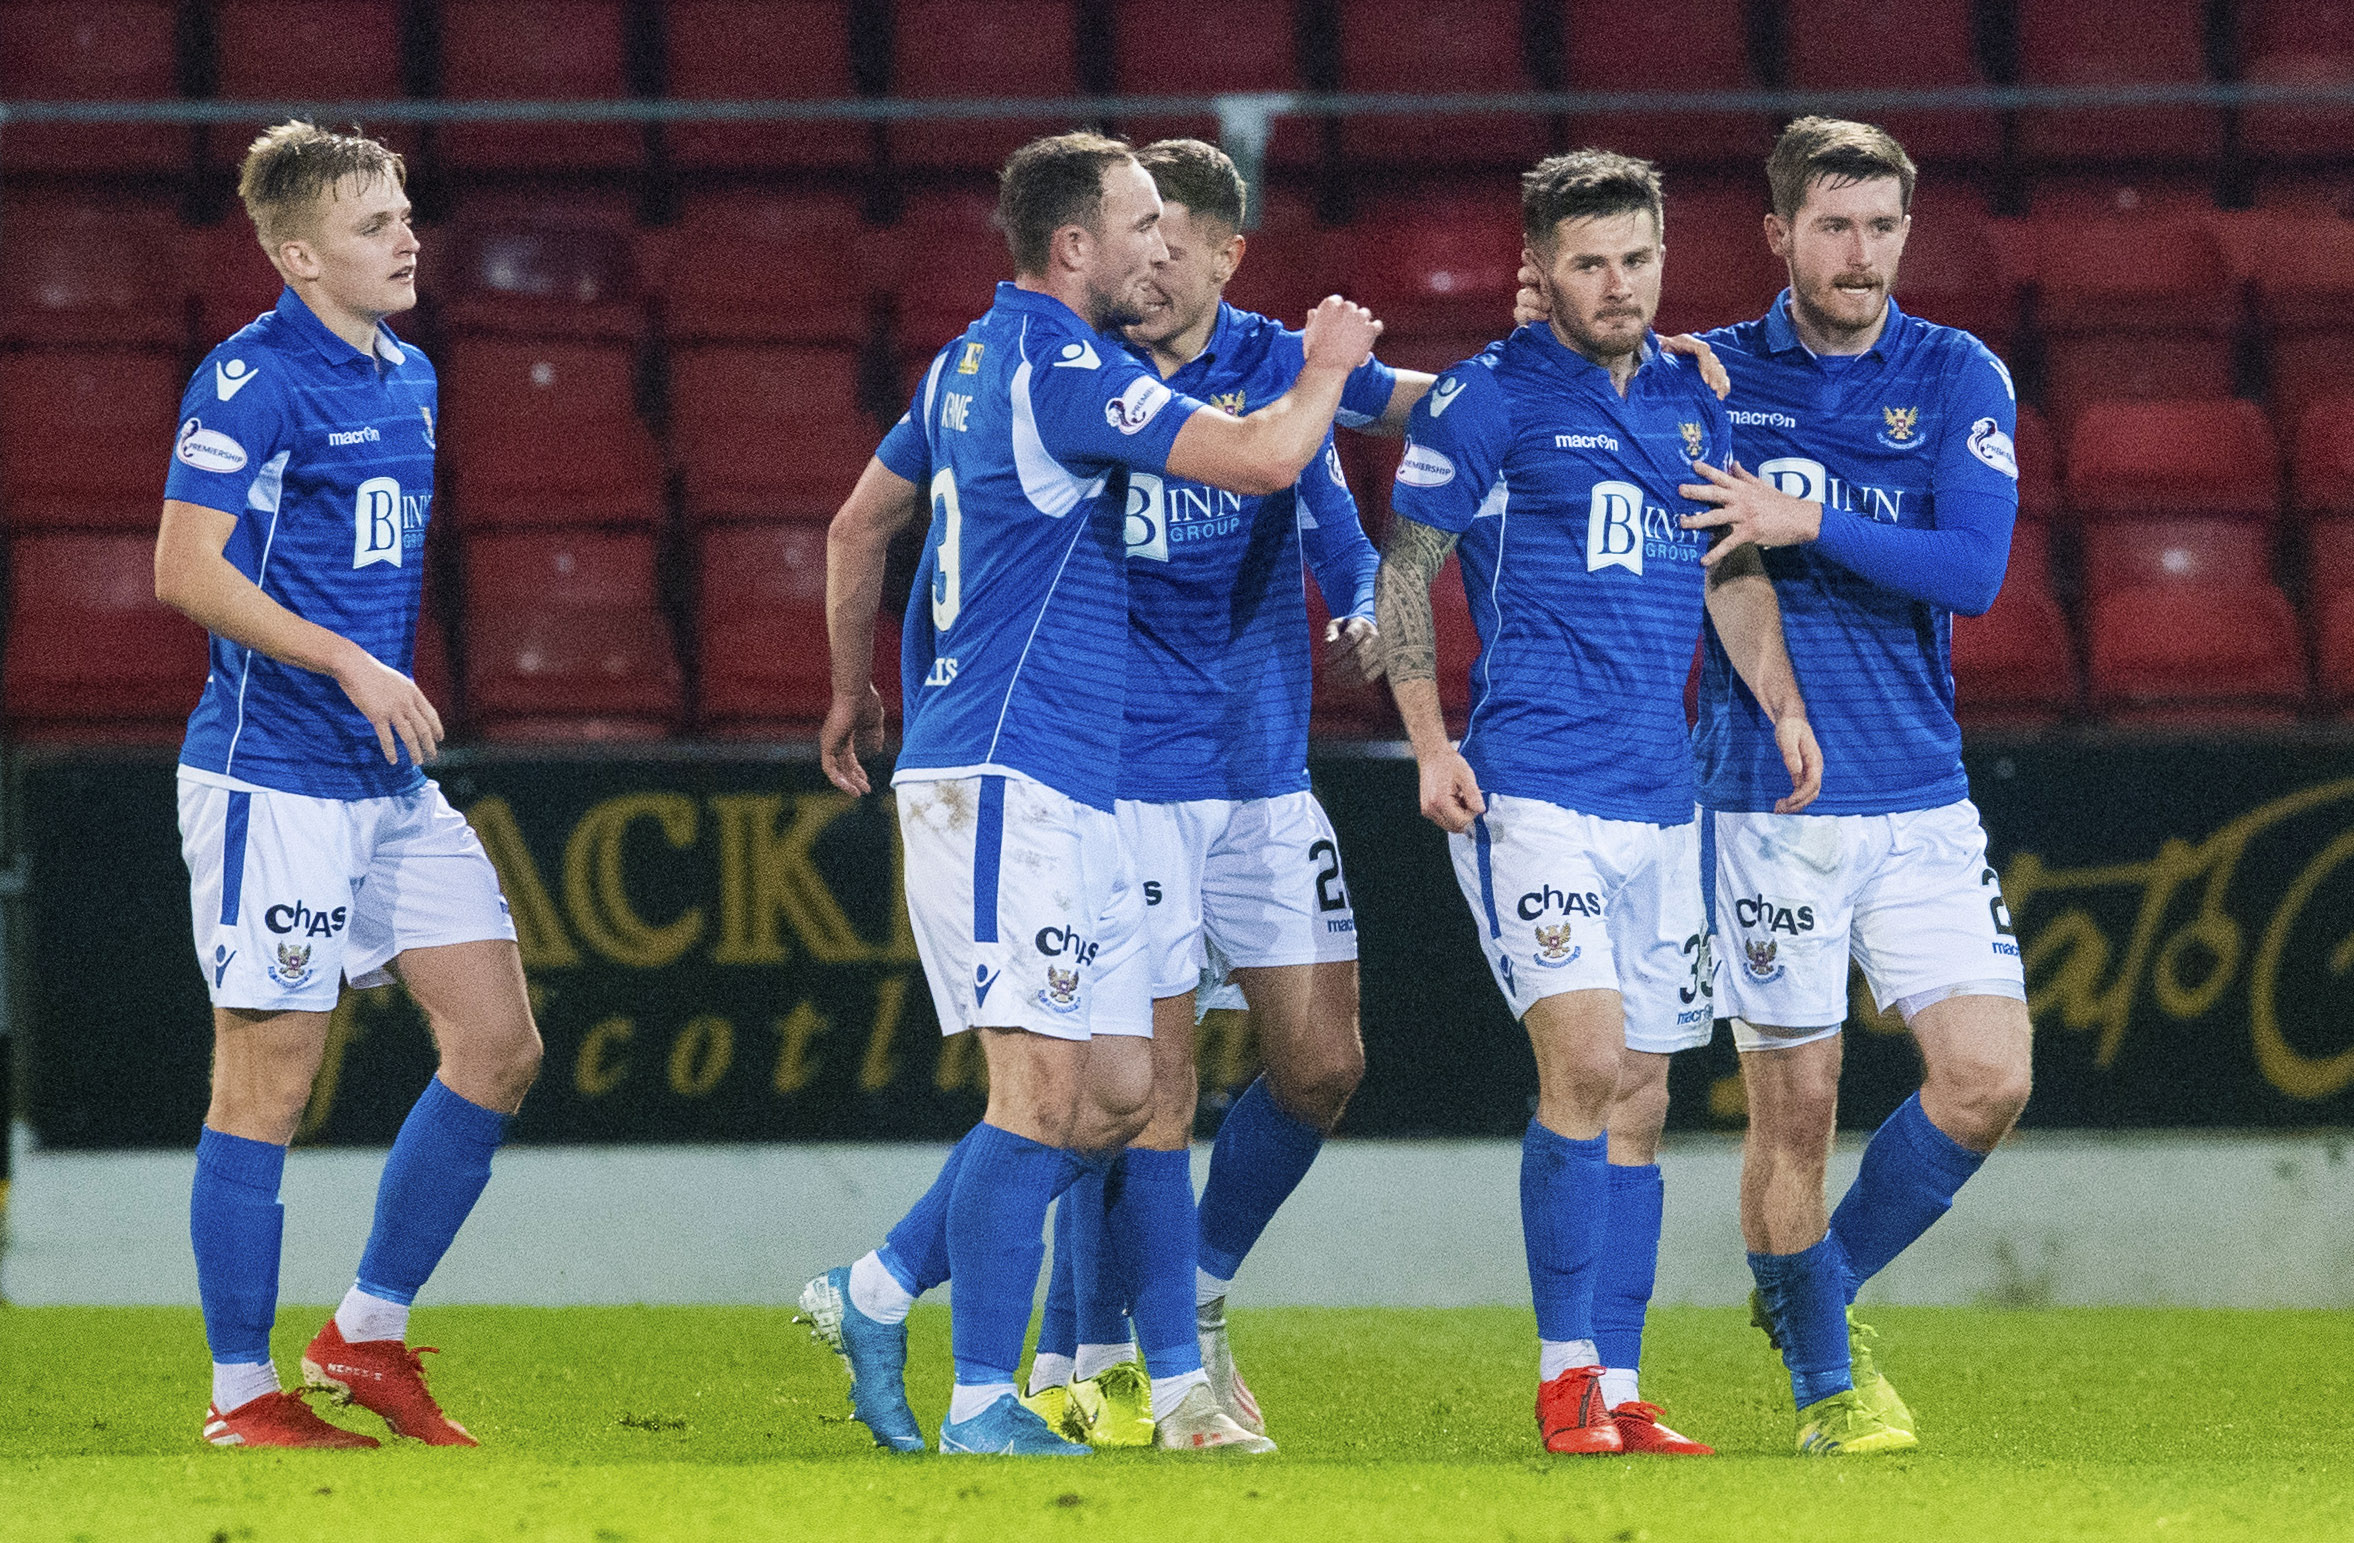 Matty Kennedy celebrates with his teammates after equalising for St Johnstone during the Ladbrokes Premiership match between St Johnstone and Aberdeen.